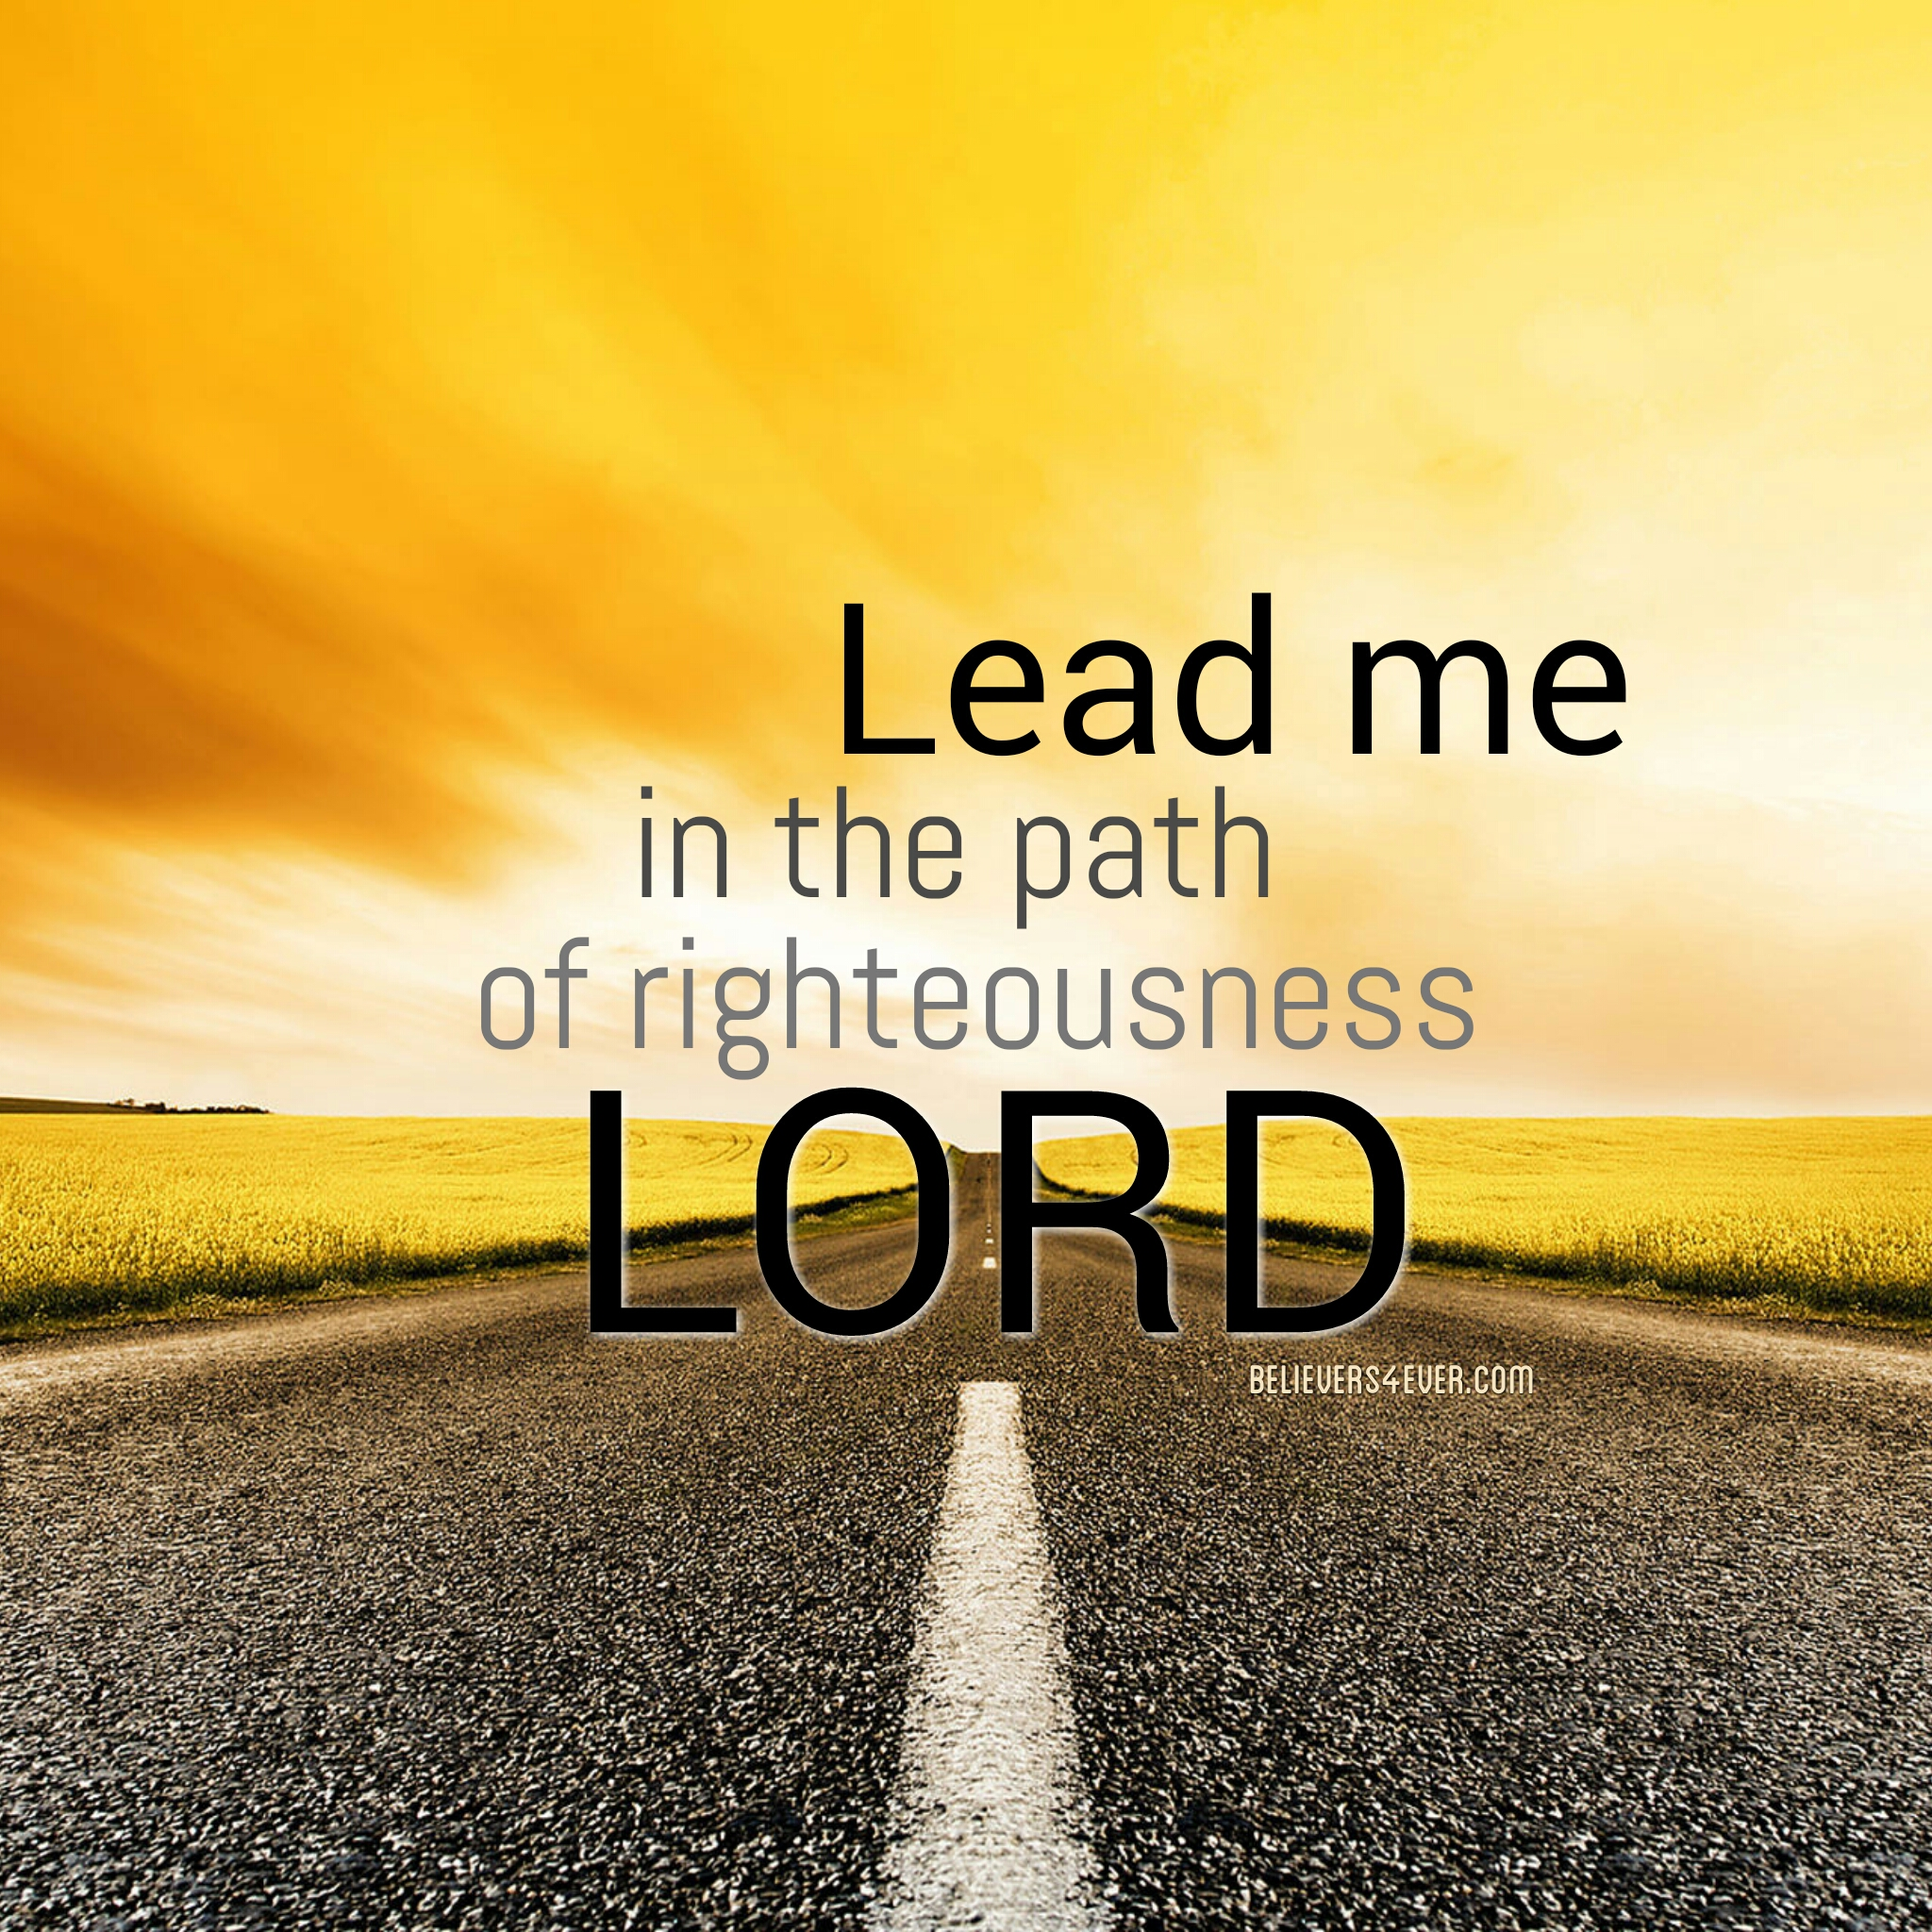 Lead me in the path of righteousness Lord